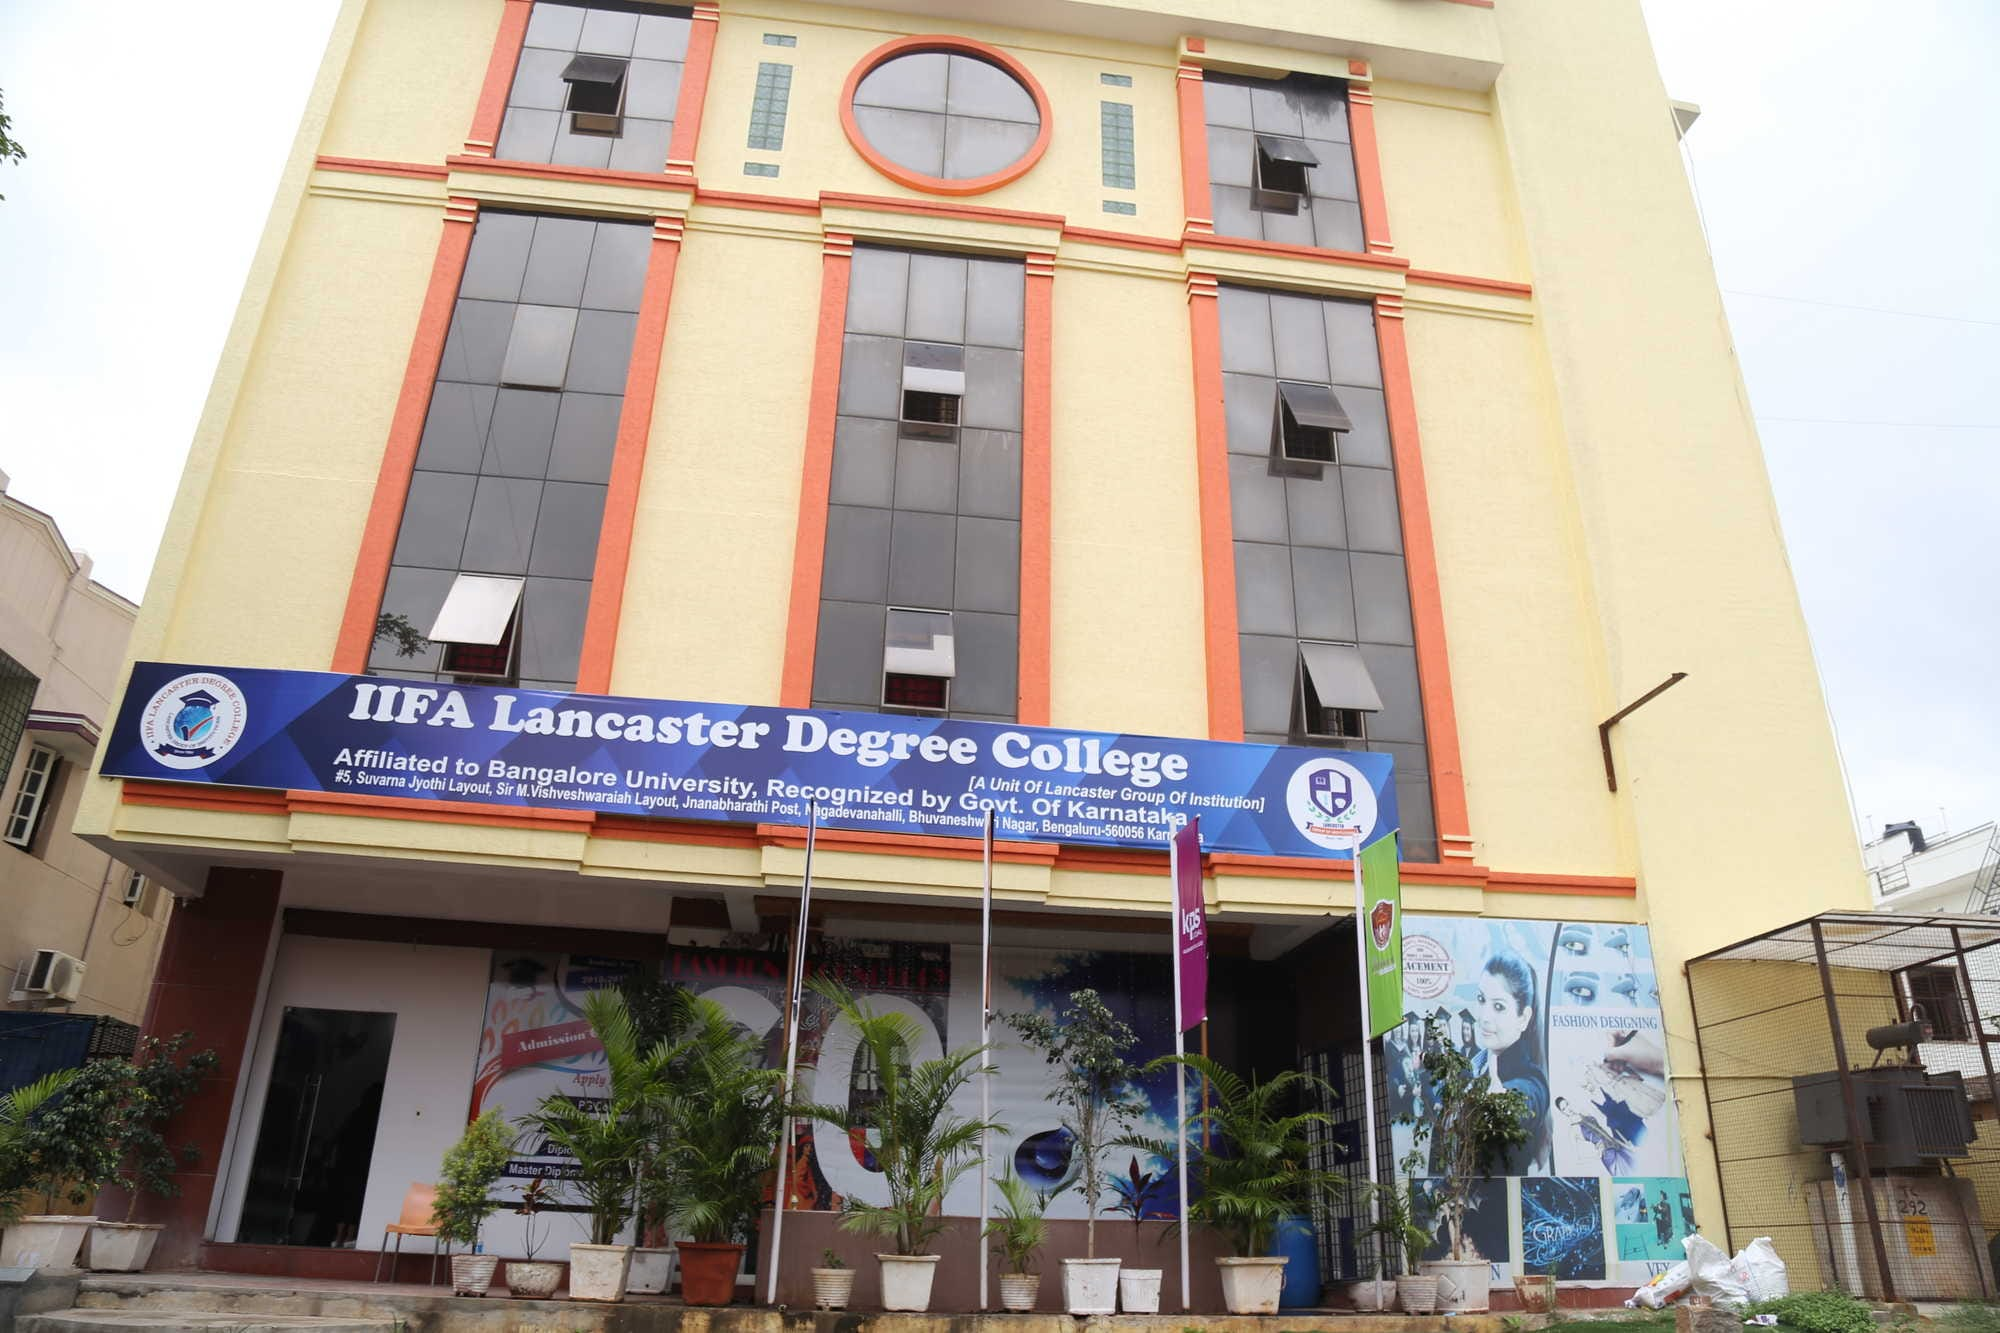 Iifa Lanster Degree College Bangalore University Colleges In Bangalore Justdial